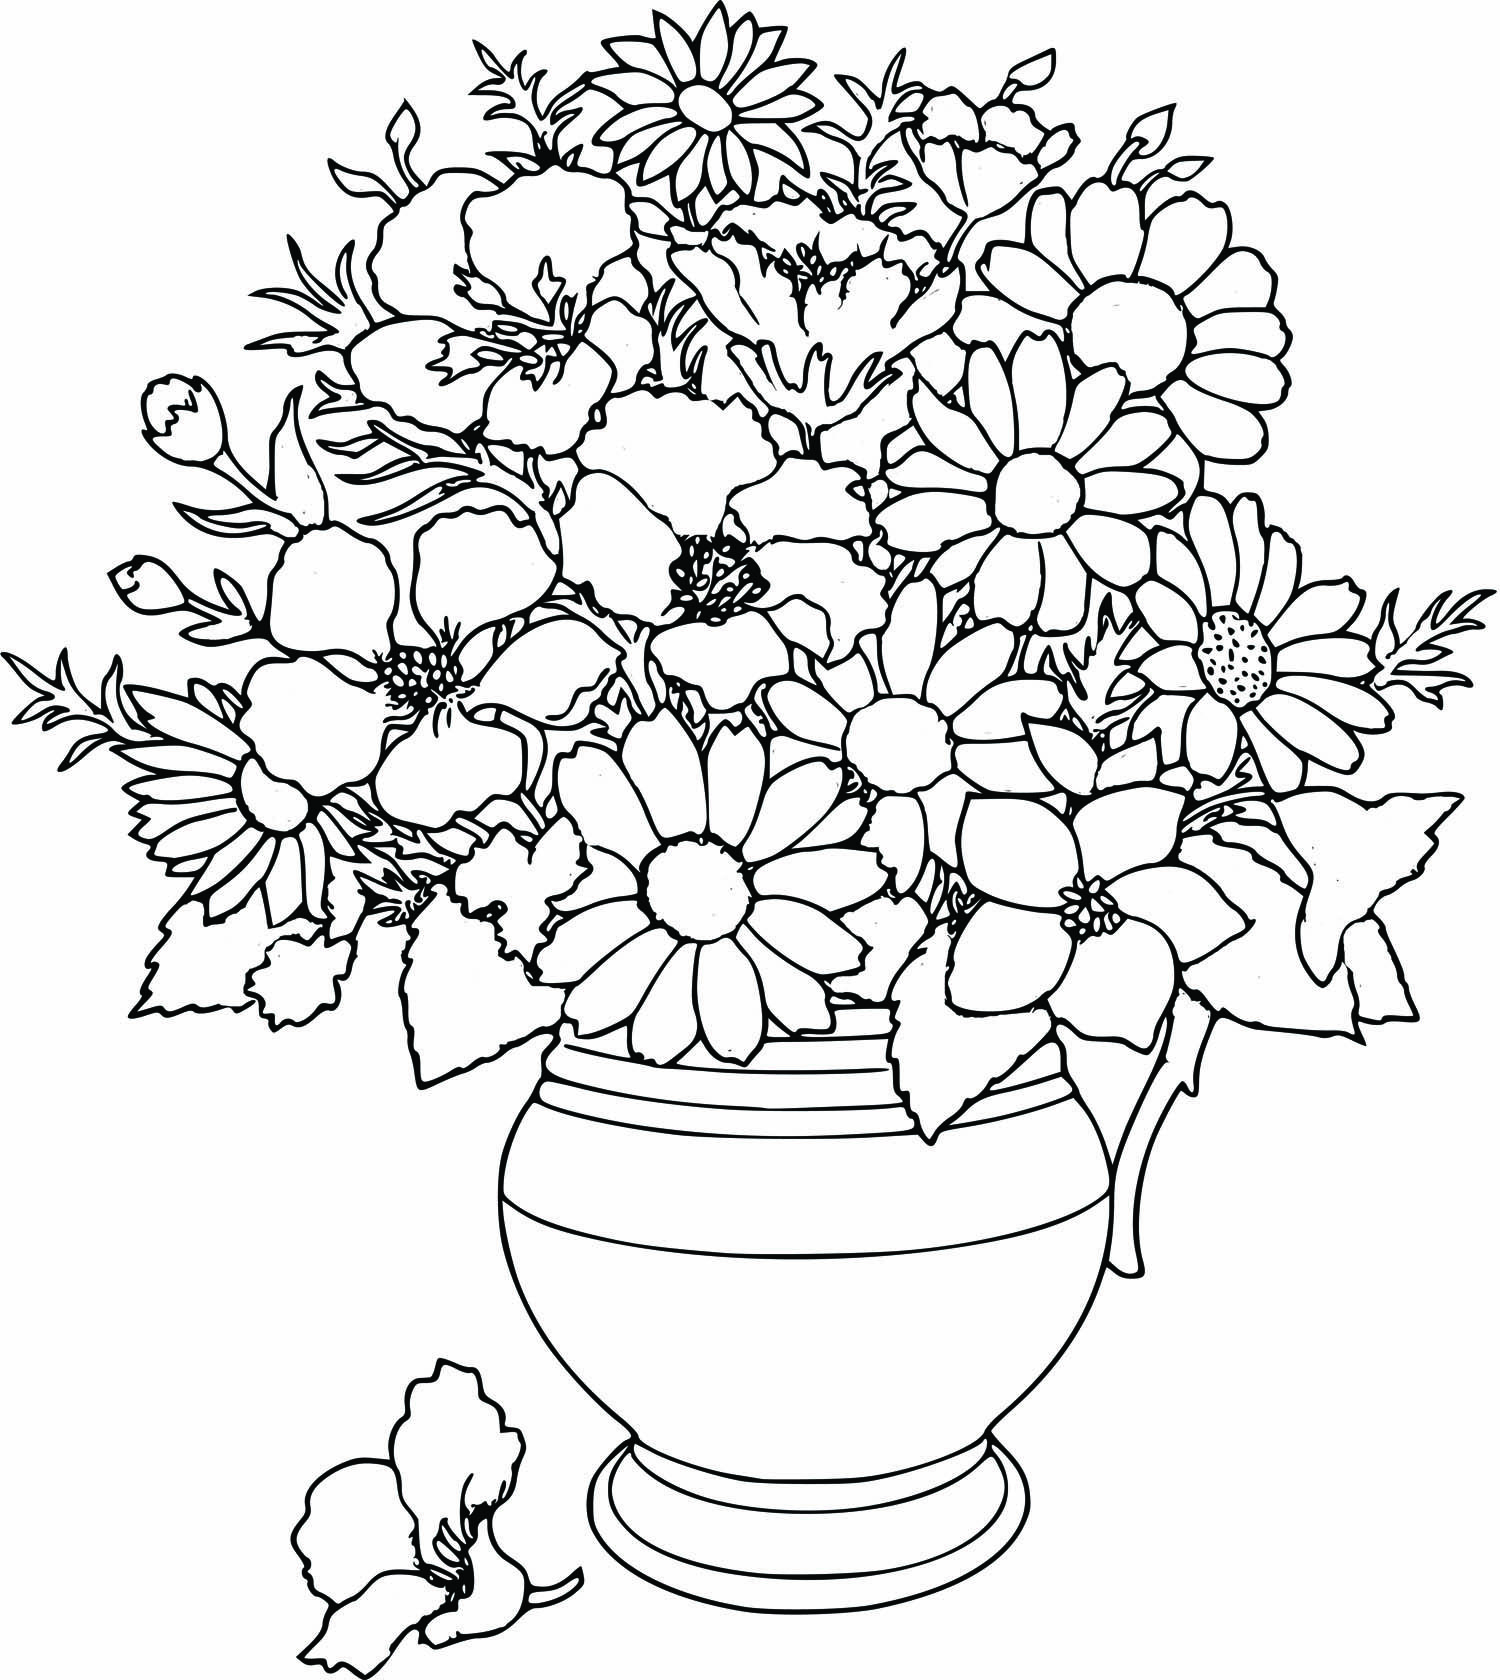 Coloring pages trees and flowers - Coloring Pages Vase